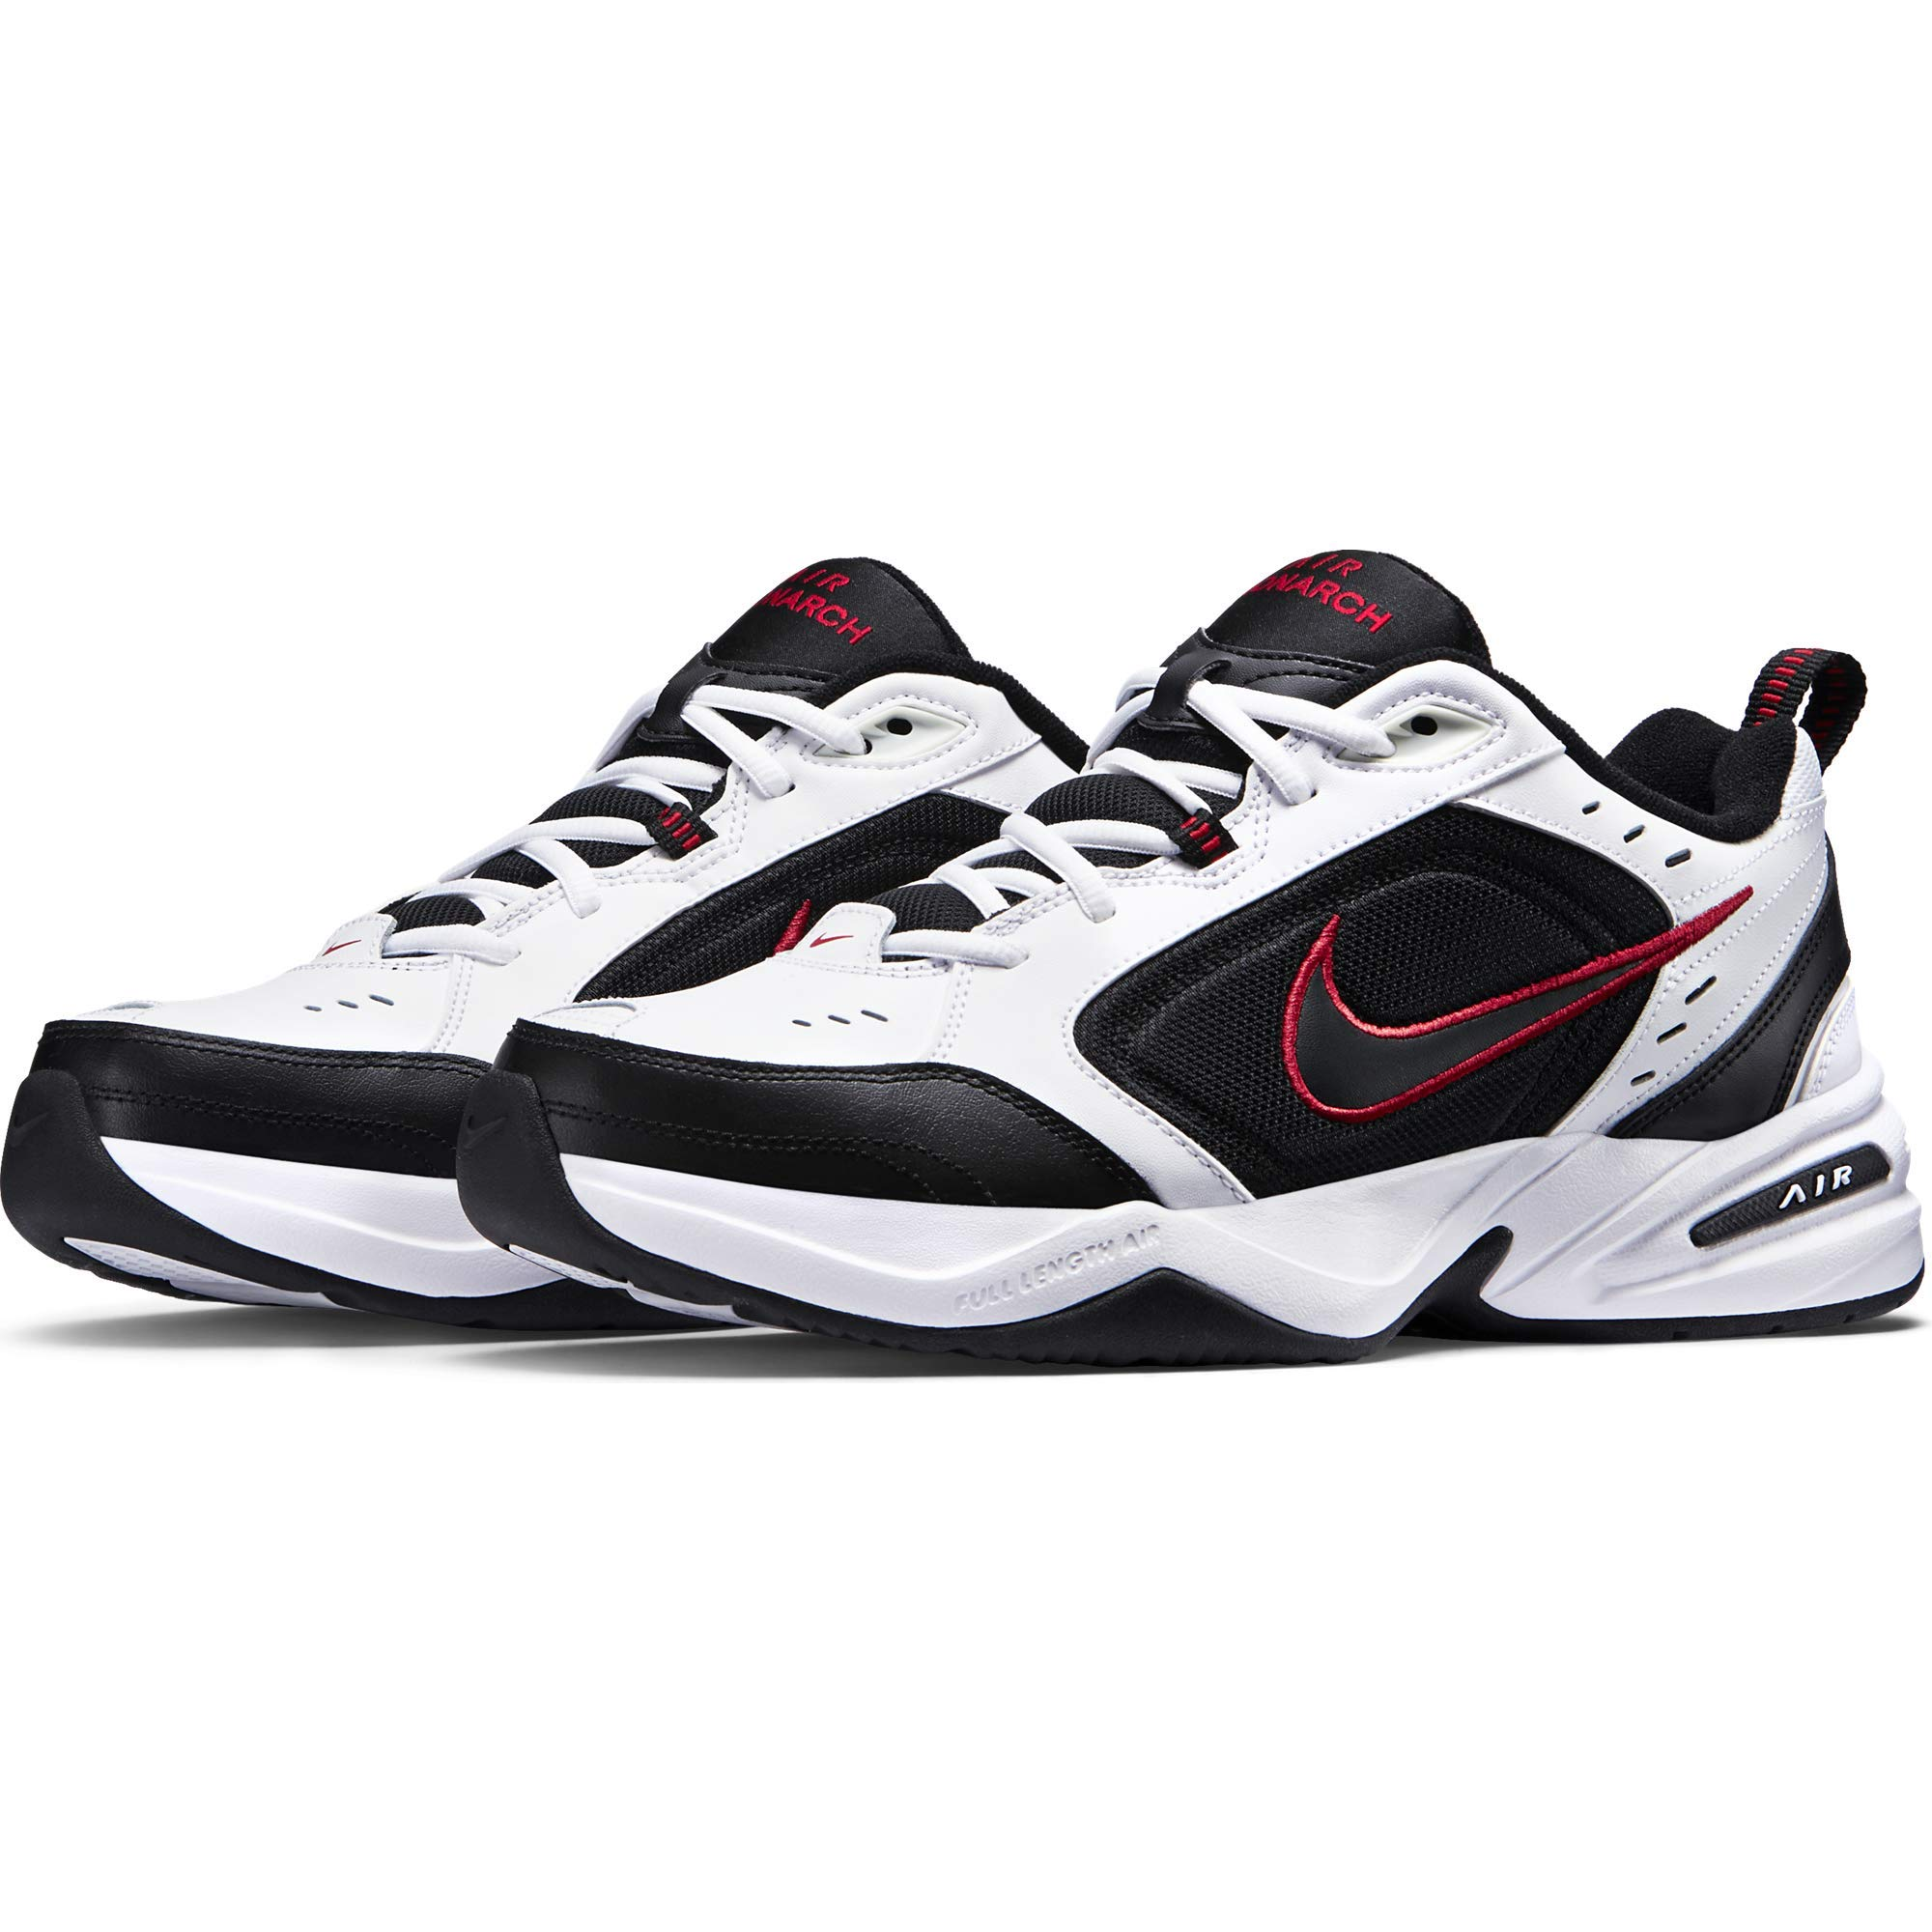 Nike Men's Air Monarch IV Cross Trainer, White/Black, 6.5 Regular US by Nike